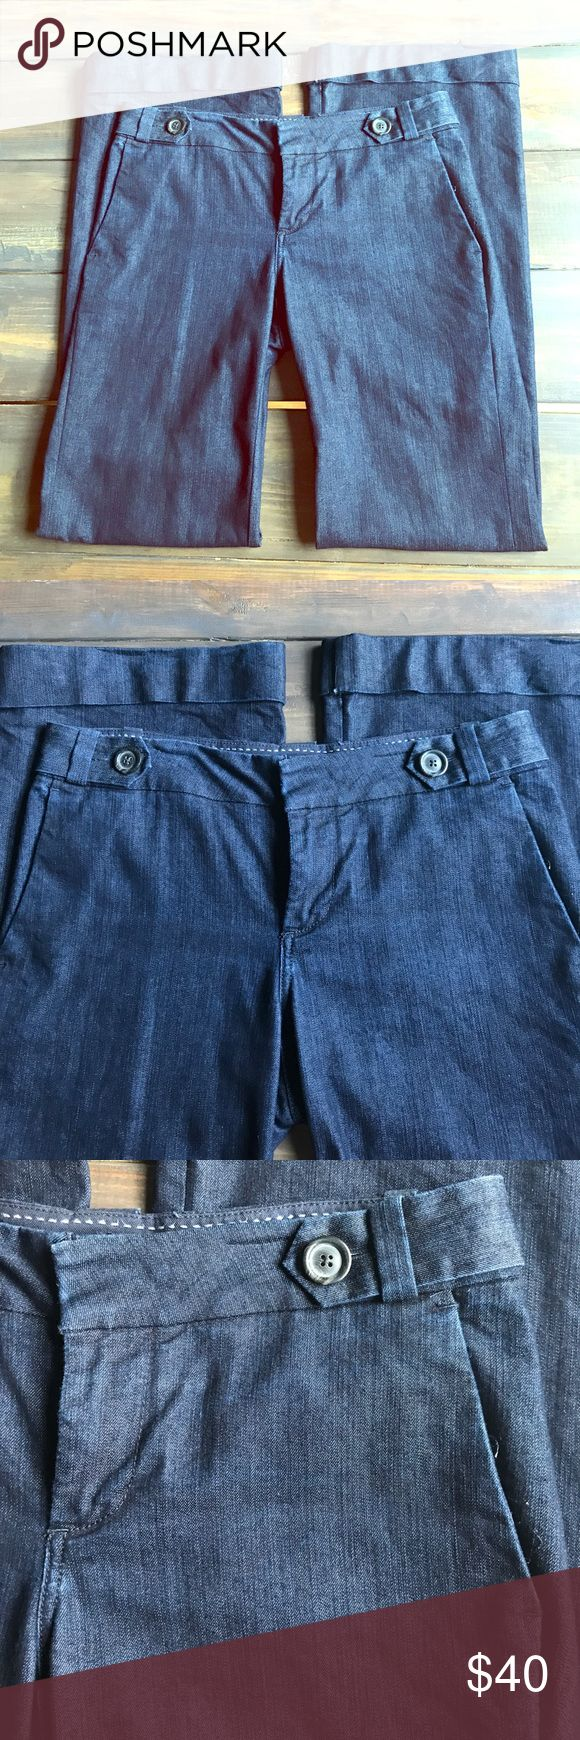 Banana Republic Trouser Jeans PERFECT CONDITION! worn once!!! These are perfect for casual Friday at the office or date night! Tailored, sophisticated look! Banana Republic Jeans